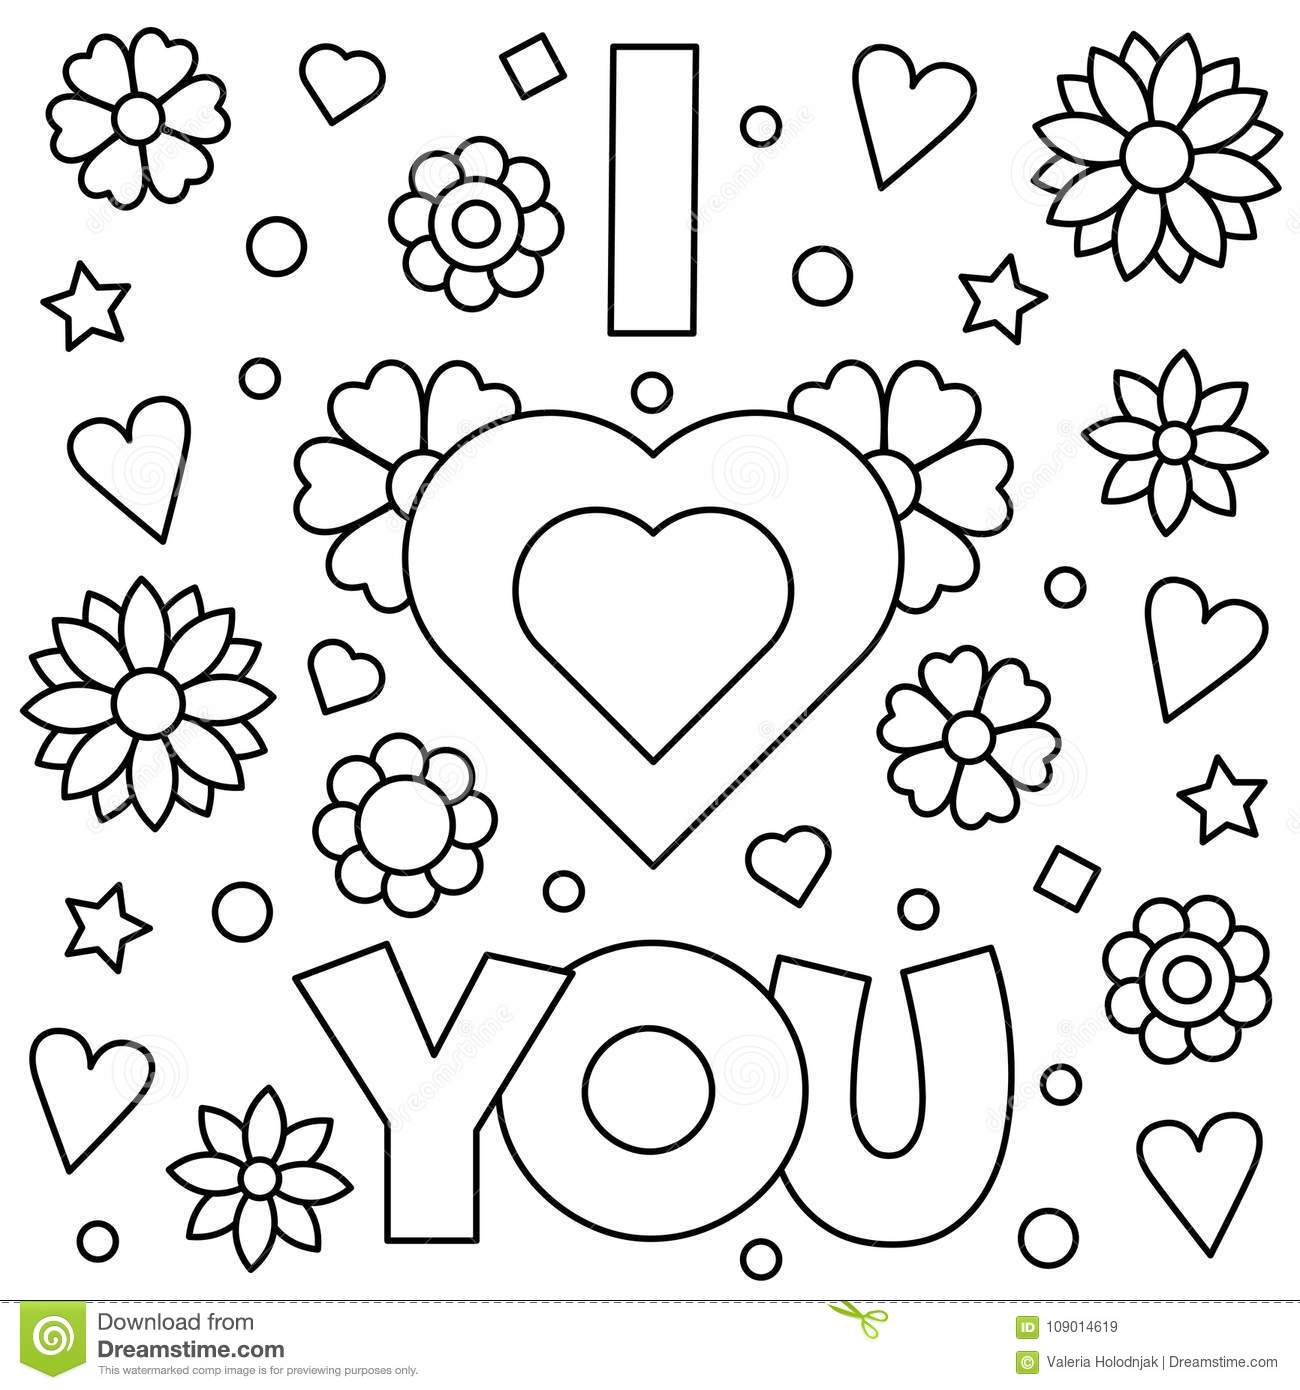 I love you coloring page vector illustration stock, love you coloring pages